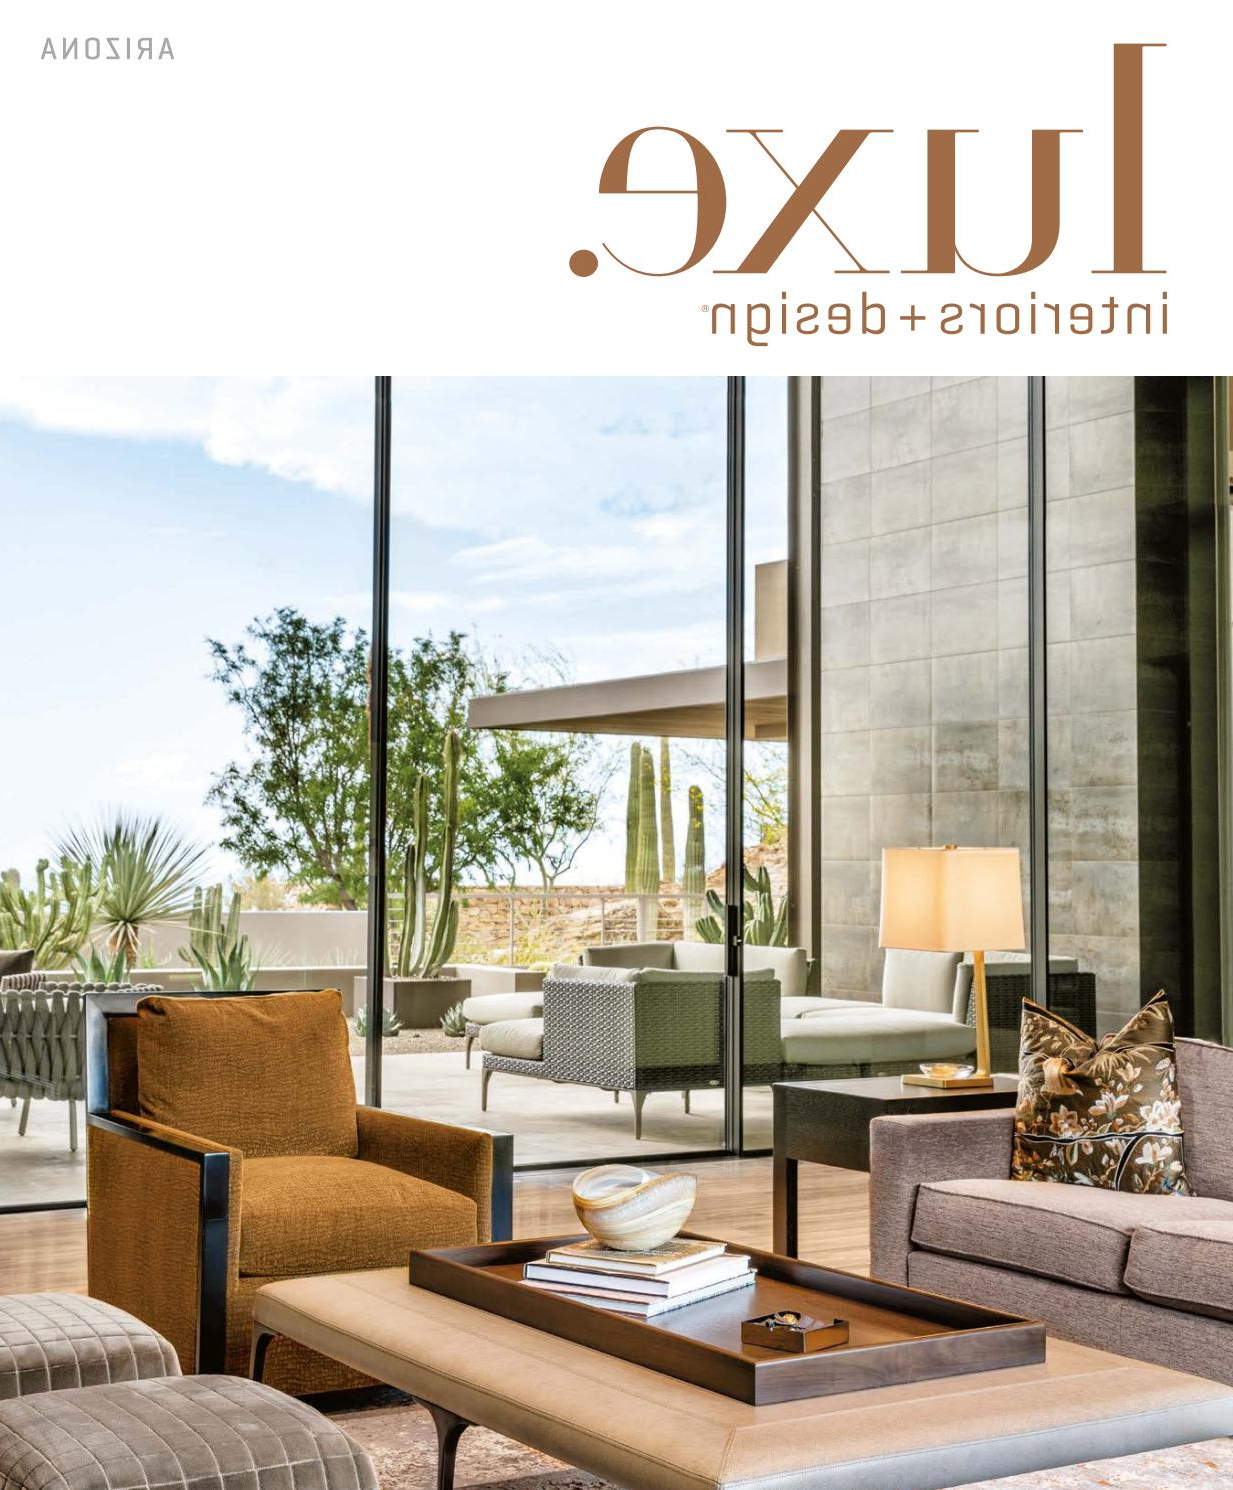 Luxe Magazine November 2016 Arizonasandow® – Issuu Pertaining To Well Liked Copper Grove Obsidian Black Tempered Glass Apartment Coffee Tables (View 11 of 20)